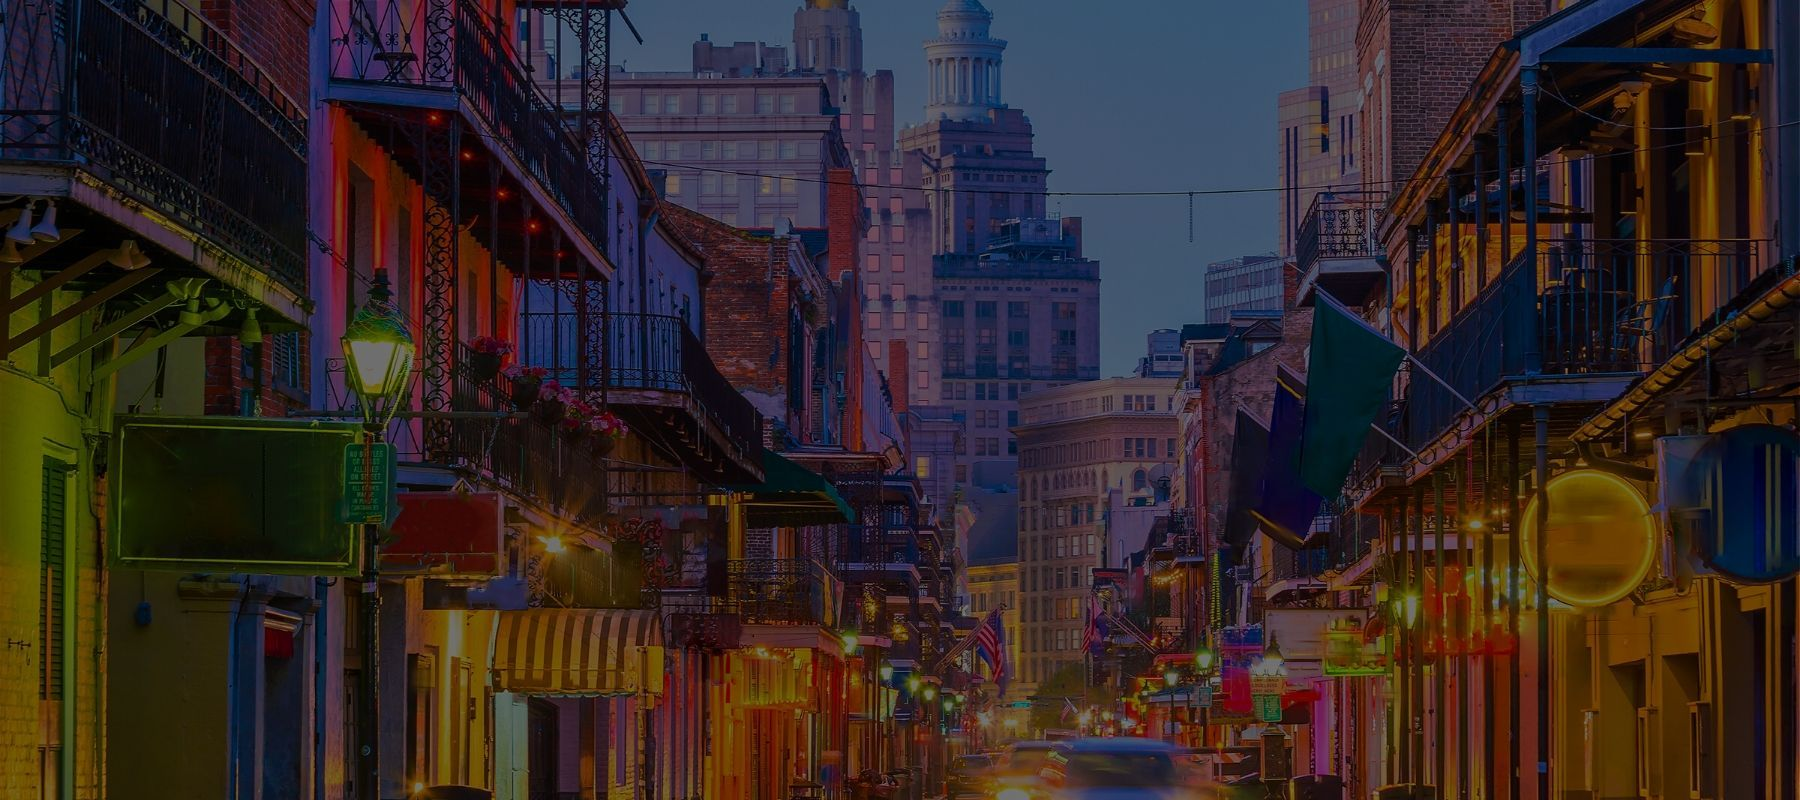 3 Nights in New Orleans